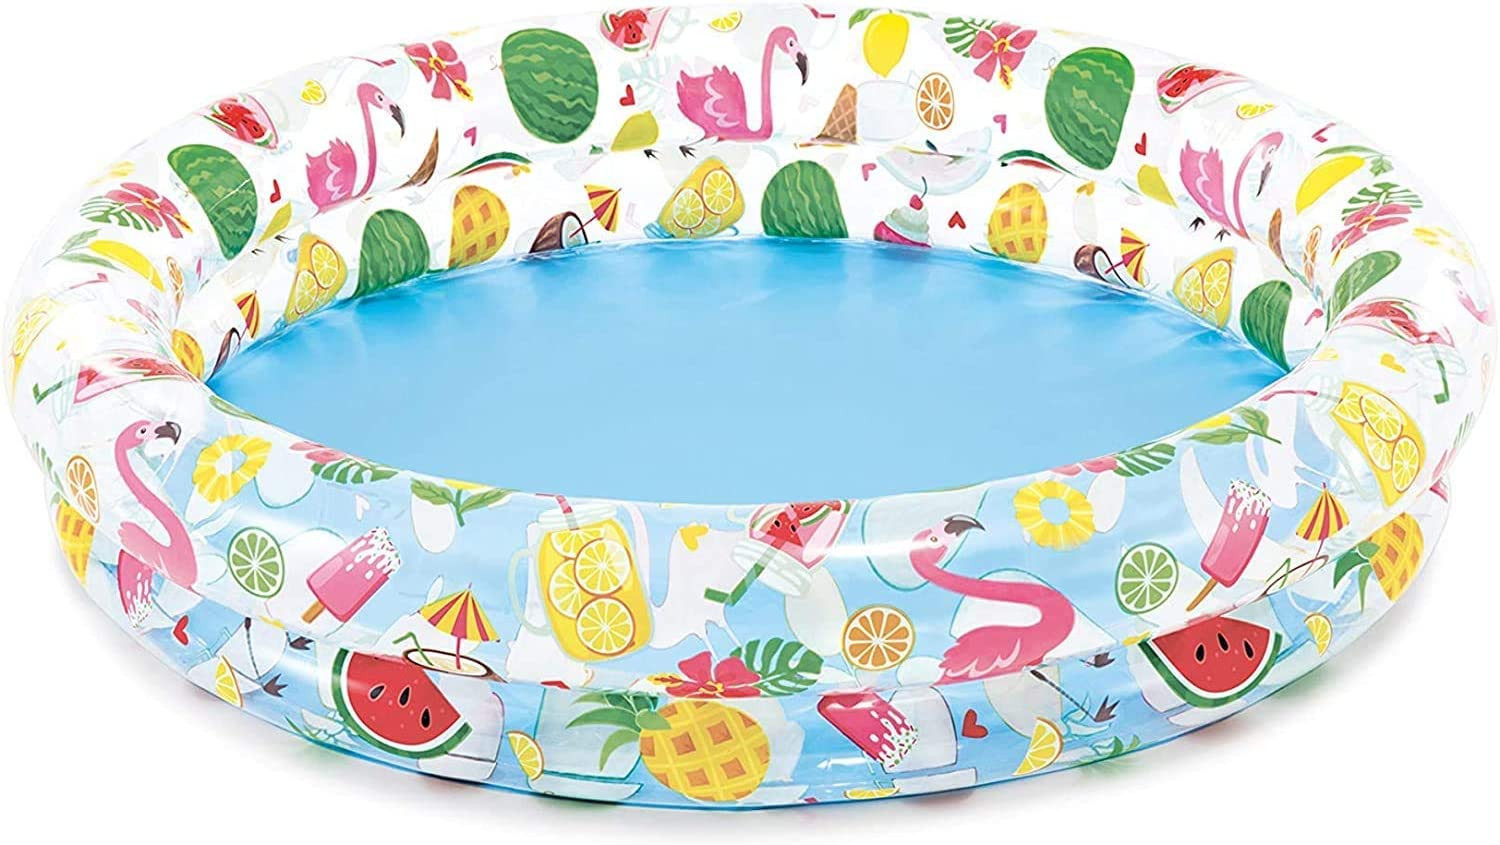 Intex 59421NP Piscina hinchable 2 aros, 150 litros, 122 x 25 cm: Amazon.es: Jardín